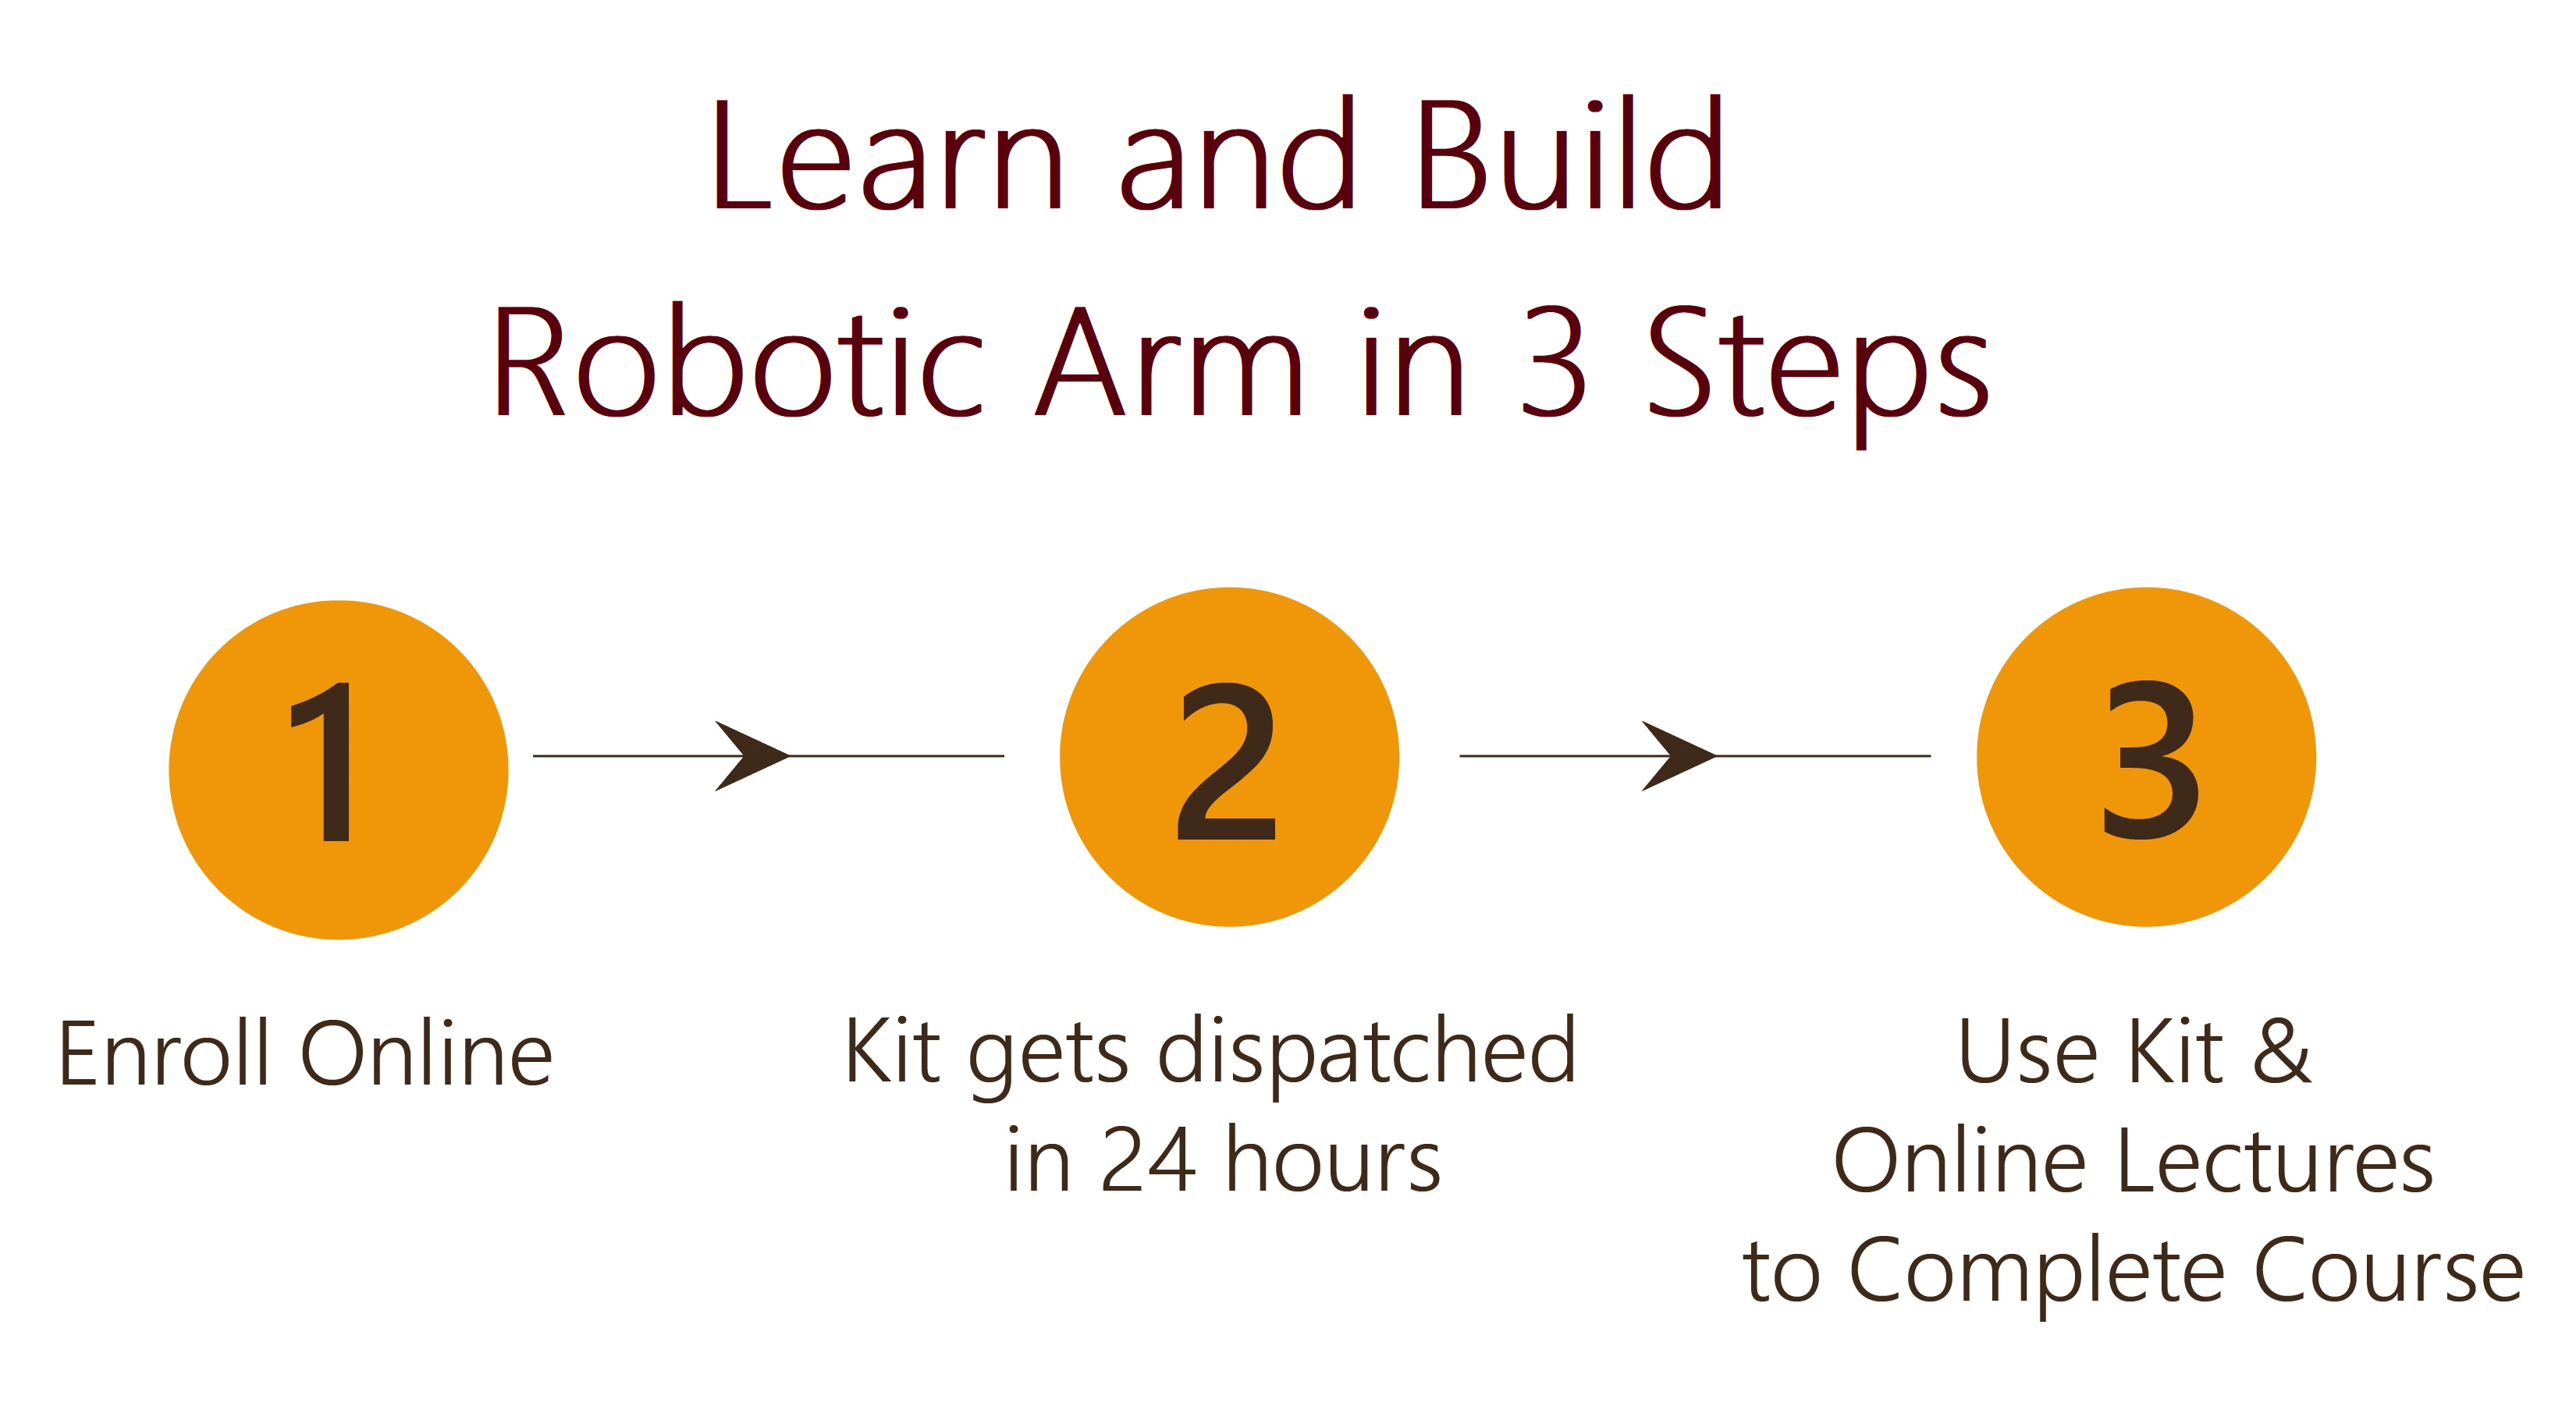 Learn and Build Robotic Arm Project in 3 Steps